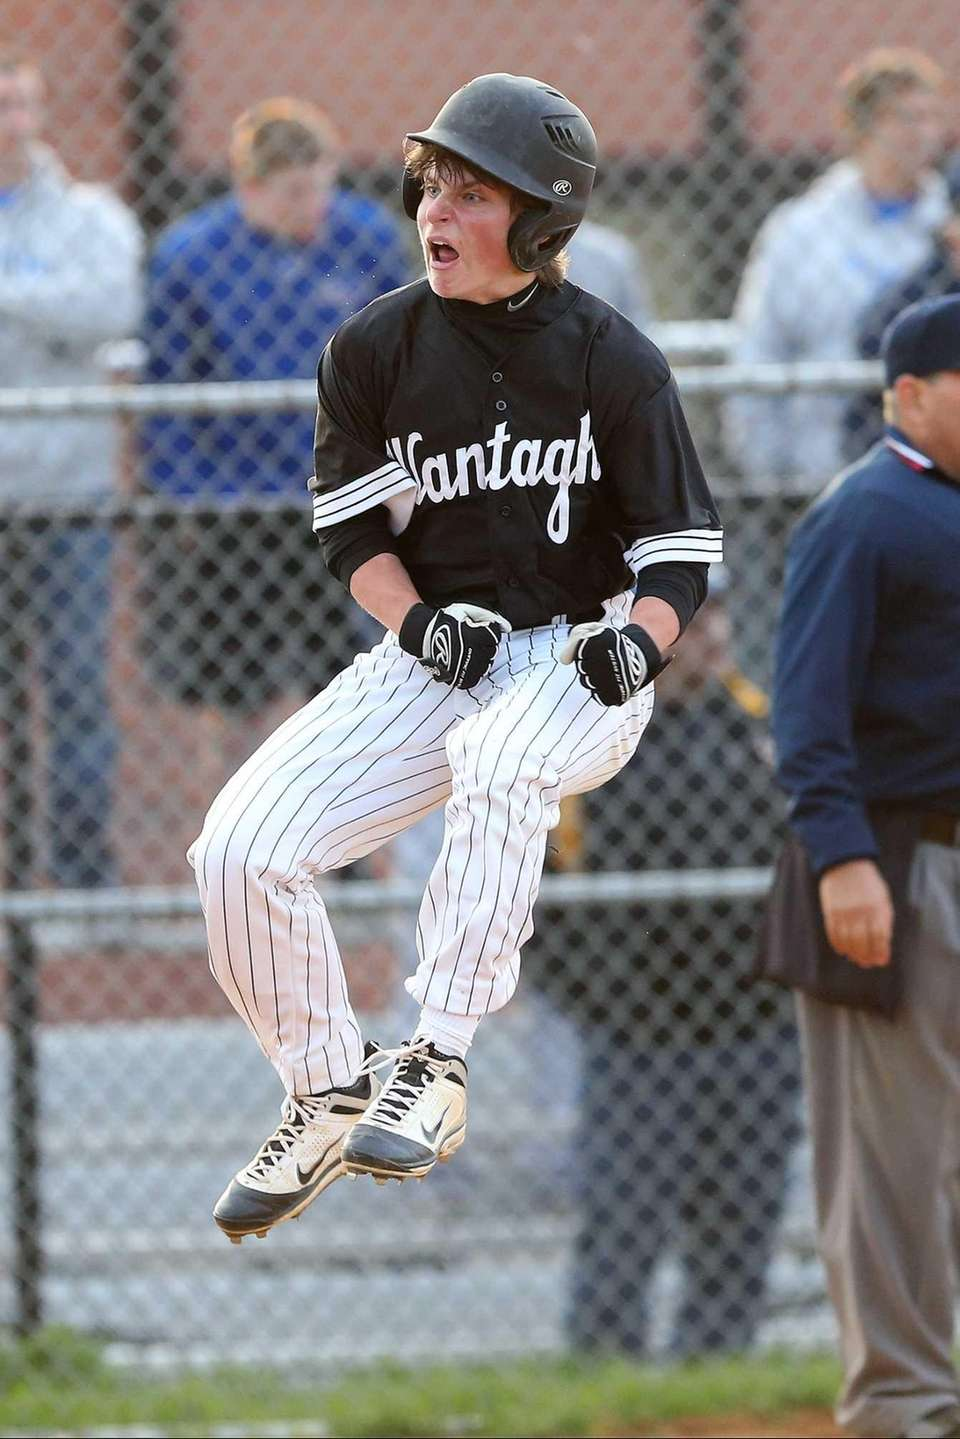 Wantagh's John Conroy records the winning run during